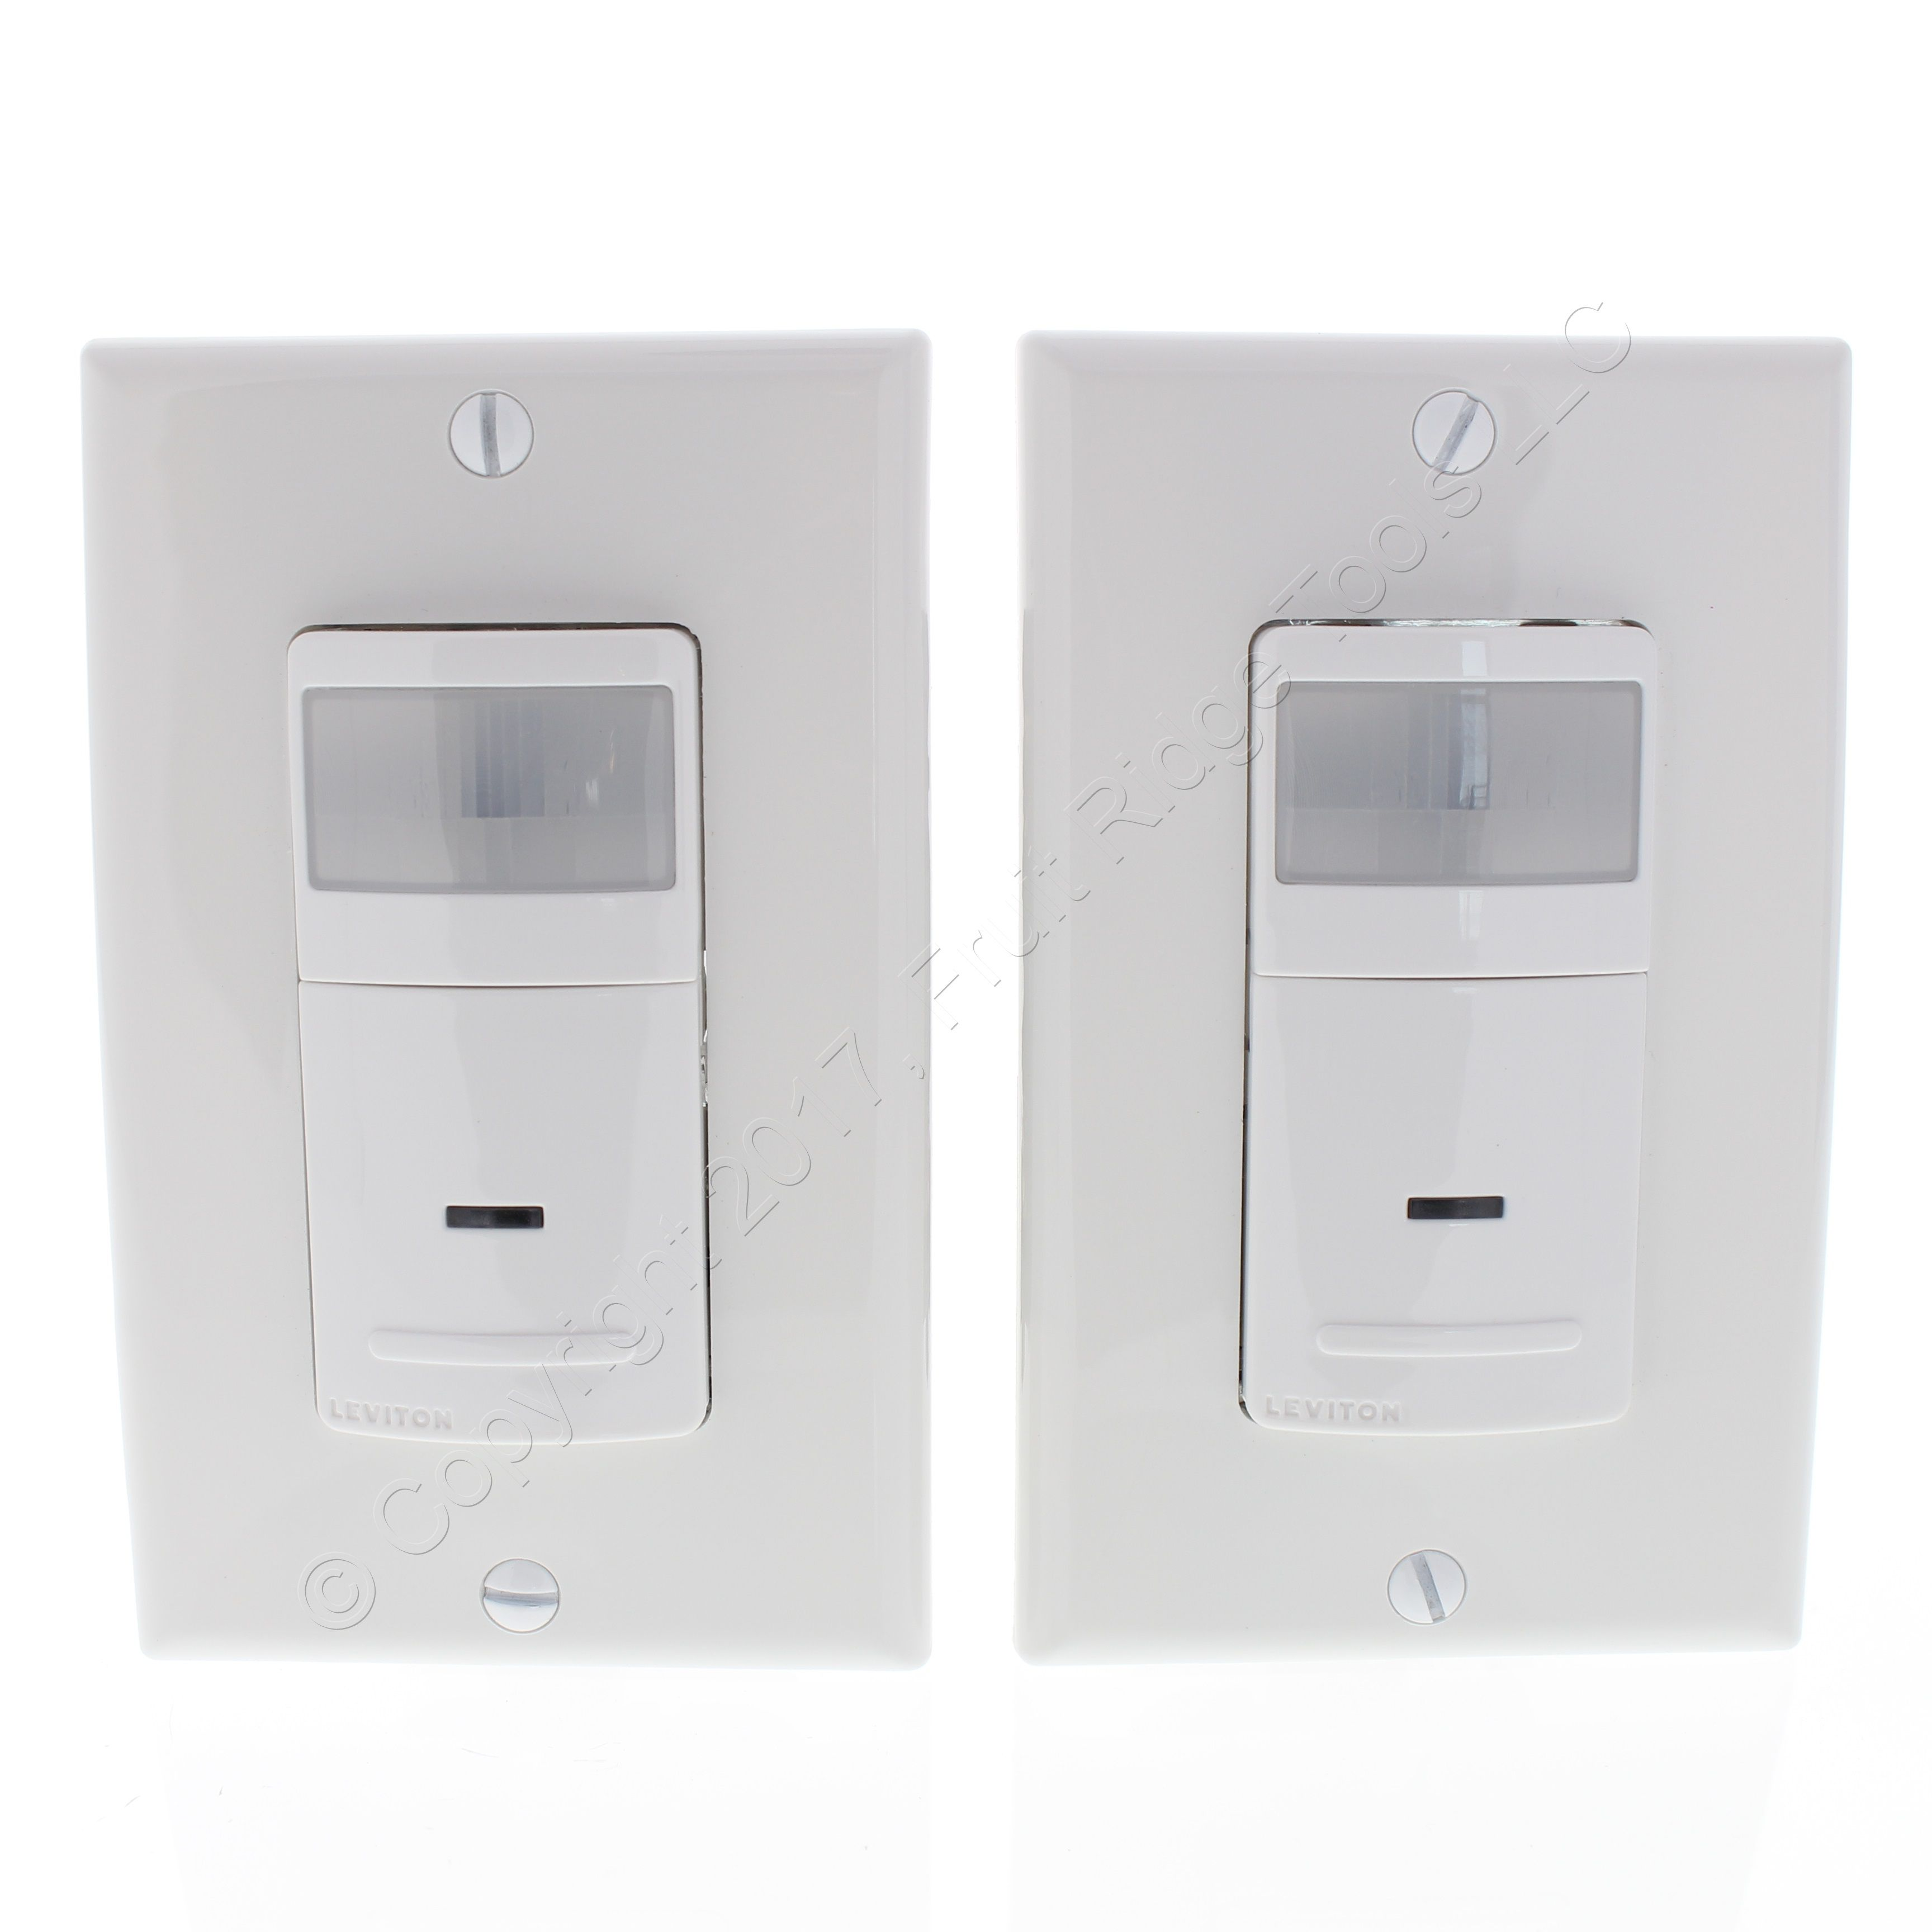 2 Leviton White Motion Sensor 1-Pole/3-Way Light Switches 900Sq Ft ...